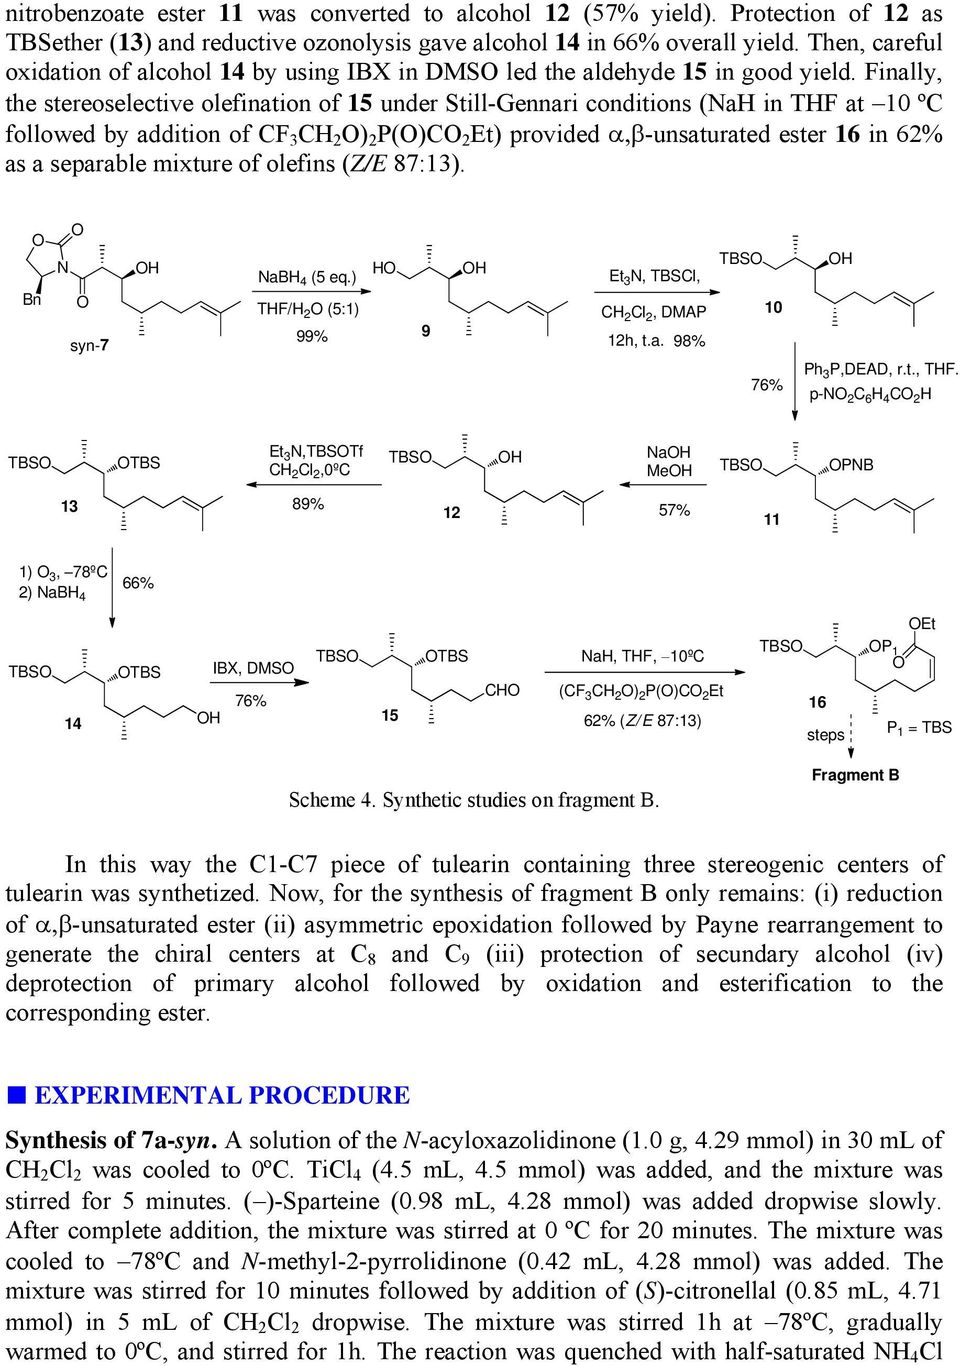 Finally, the stereoselective olefination of 15 under Still-Gennari conditions (NaH in THF at 10 ºC followed by addition of CF 3 CH 2 ) 2 P()C 2 Et) provided -unsaturated ester 16 in 62% as a